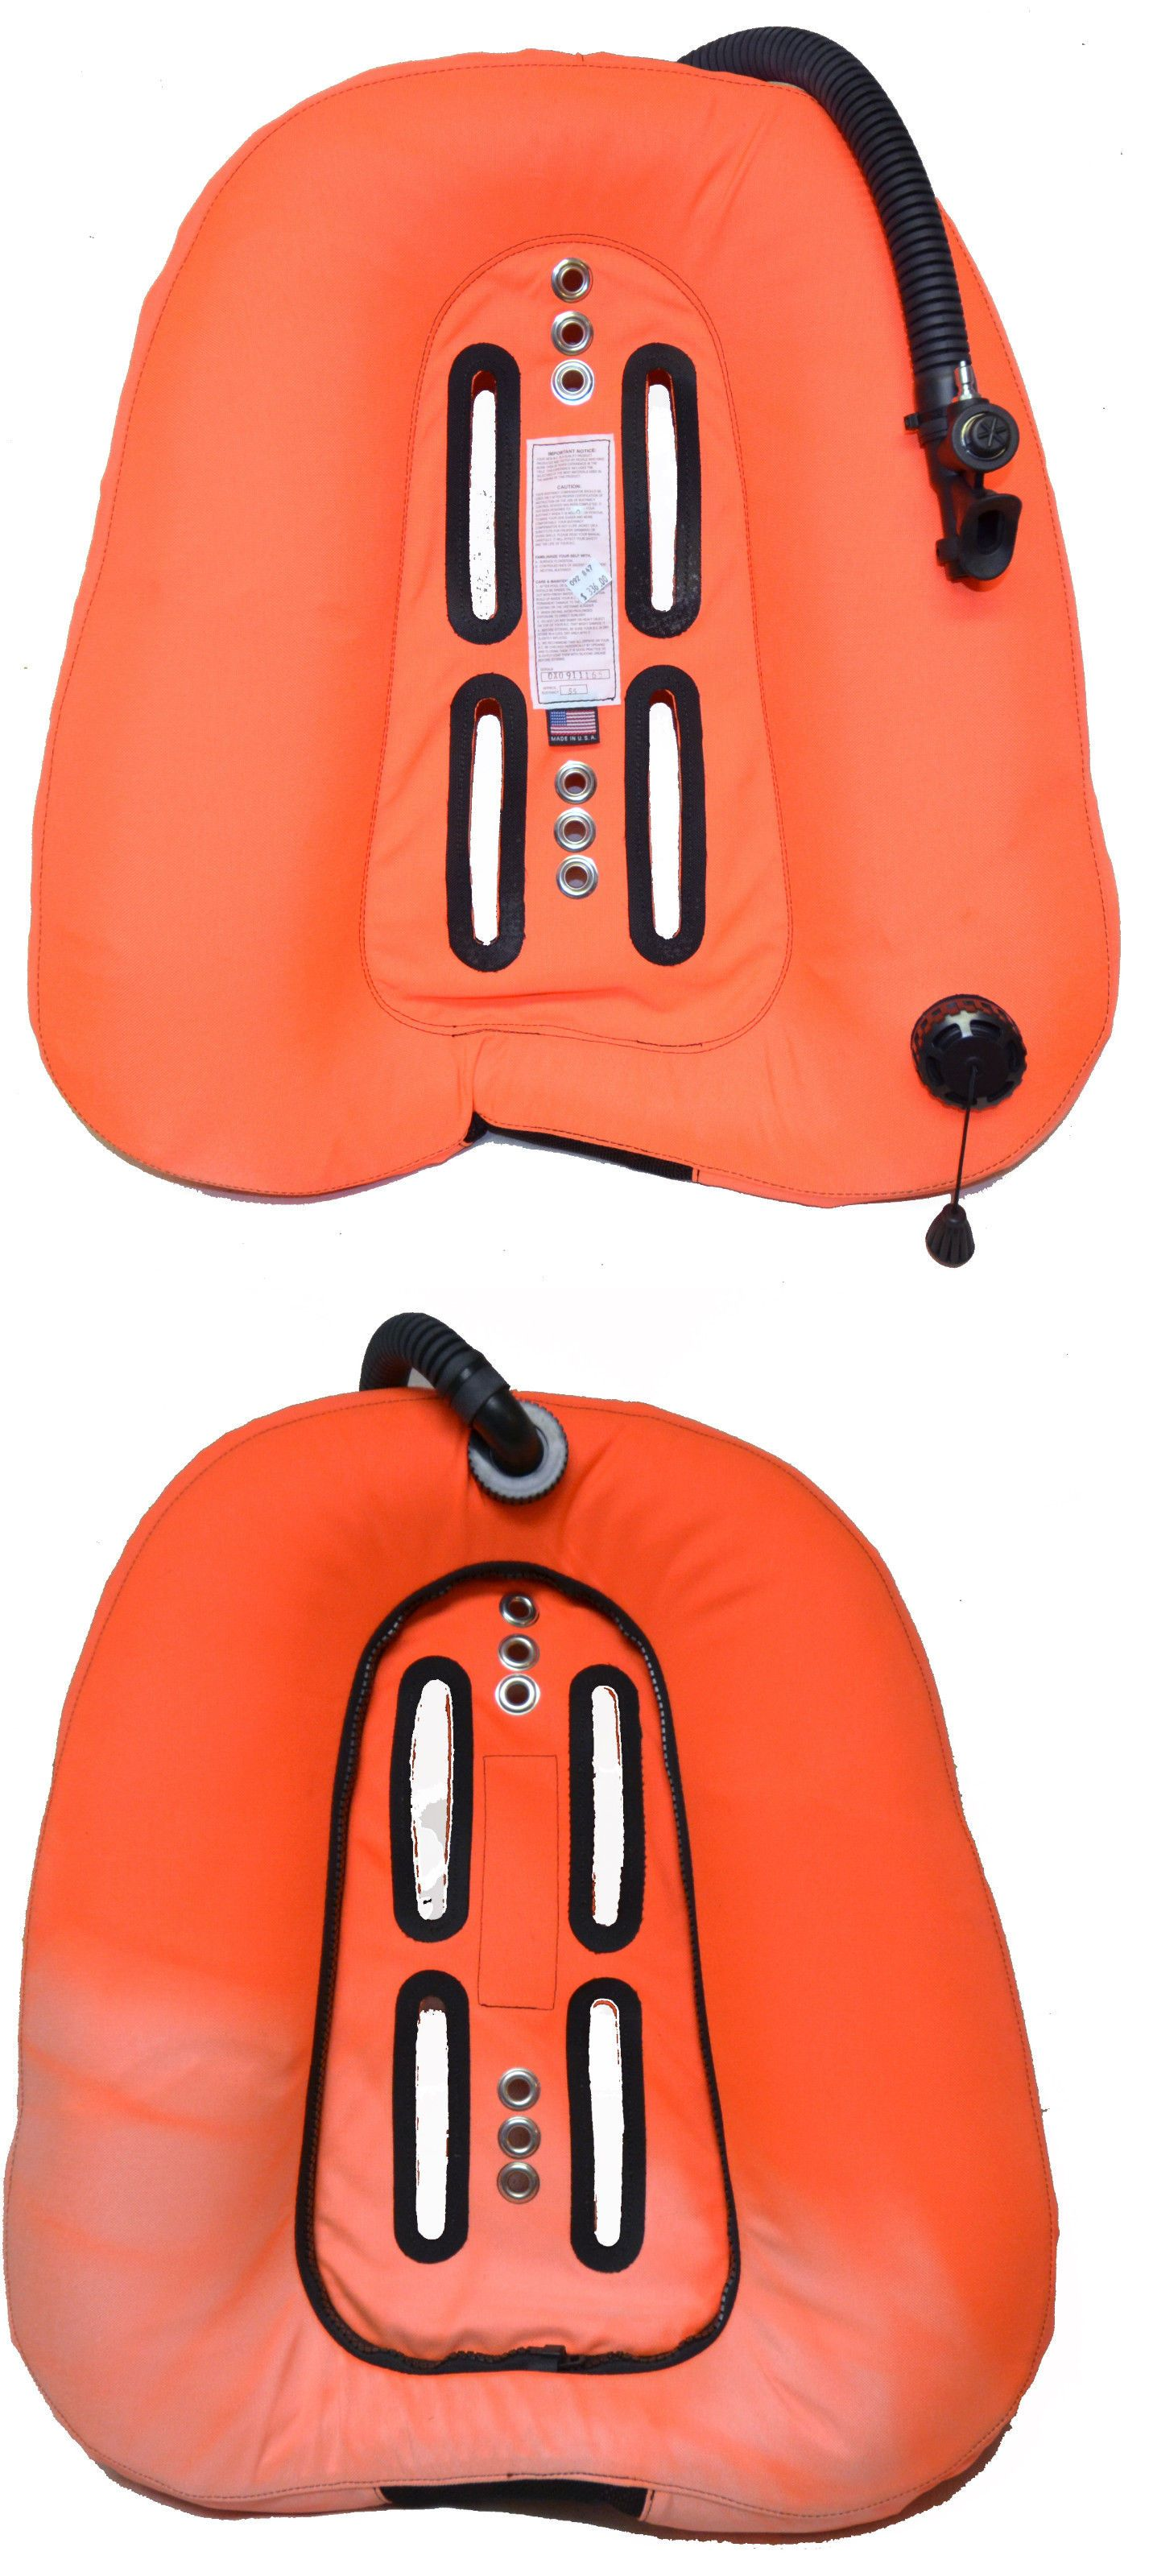 Buoyancy Compensators 16053: Oxycheq Mach V 55Lb Double Tank Wing - Brand New Closeout -> BUY IT NOW ONLY: $200 on eBay!